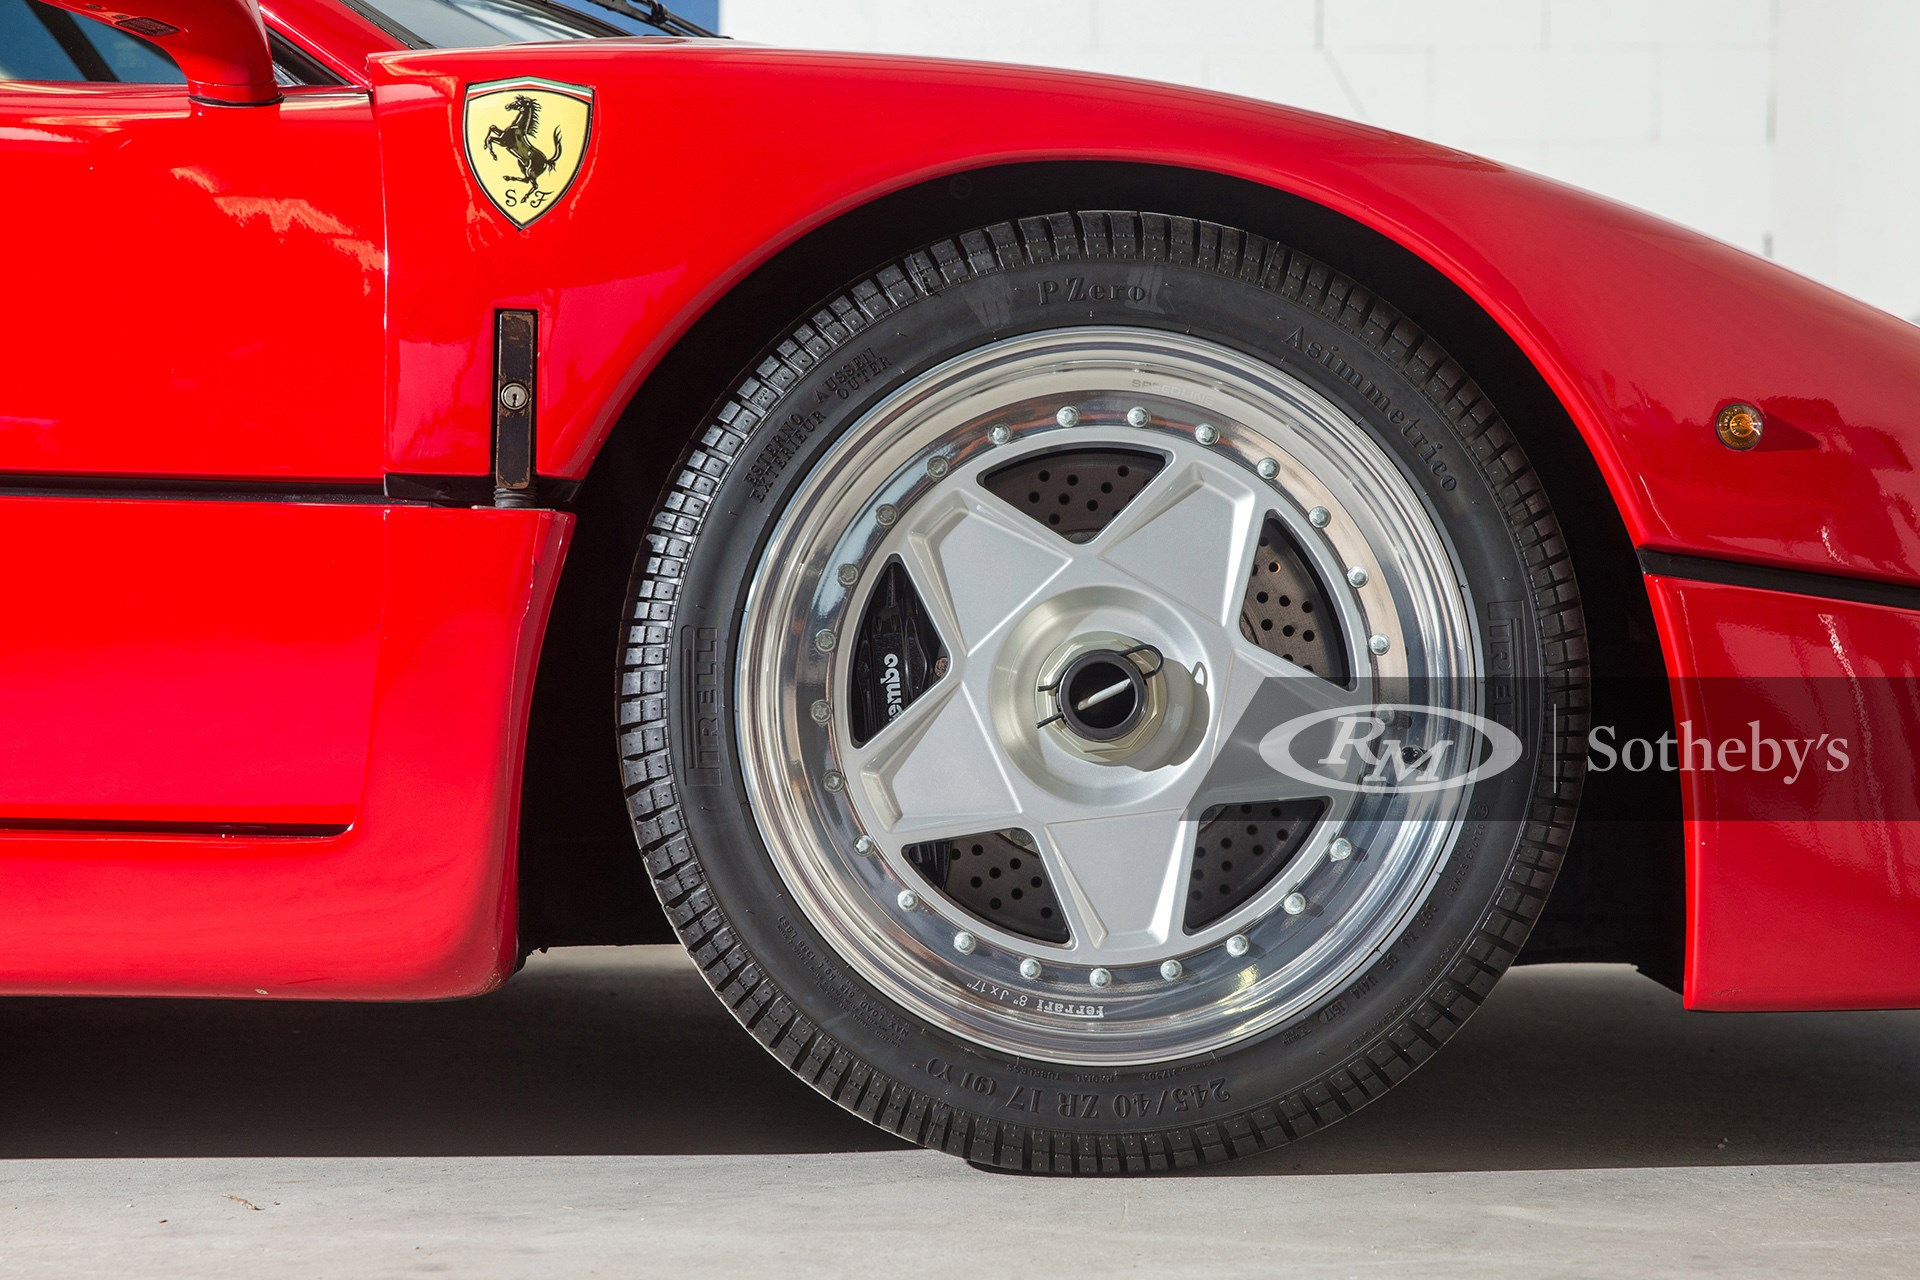 RM Sotheby's London 2020, Online Only, Blog, Ferrari F40, Gerhard Berger, Upcoming Auction